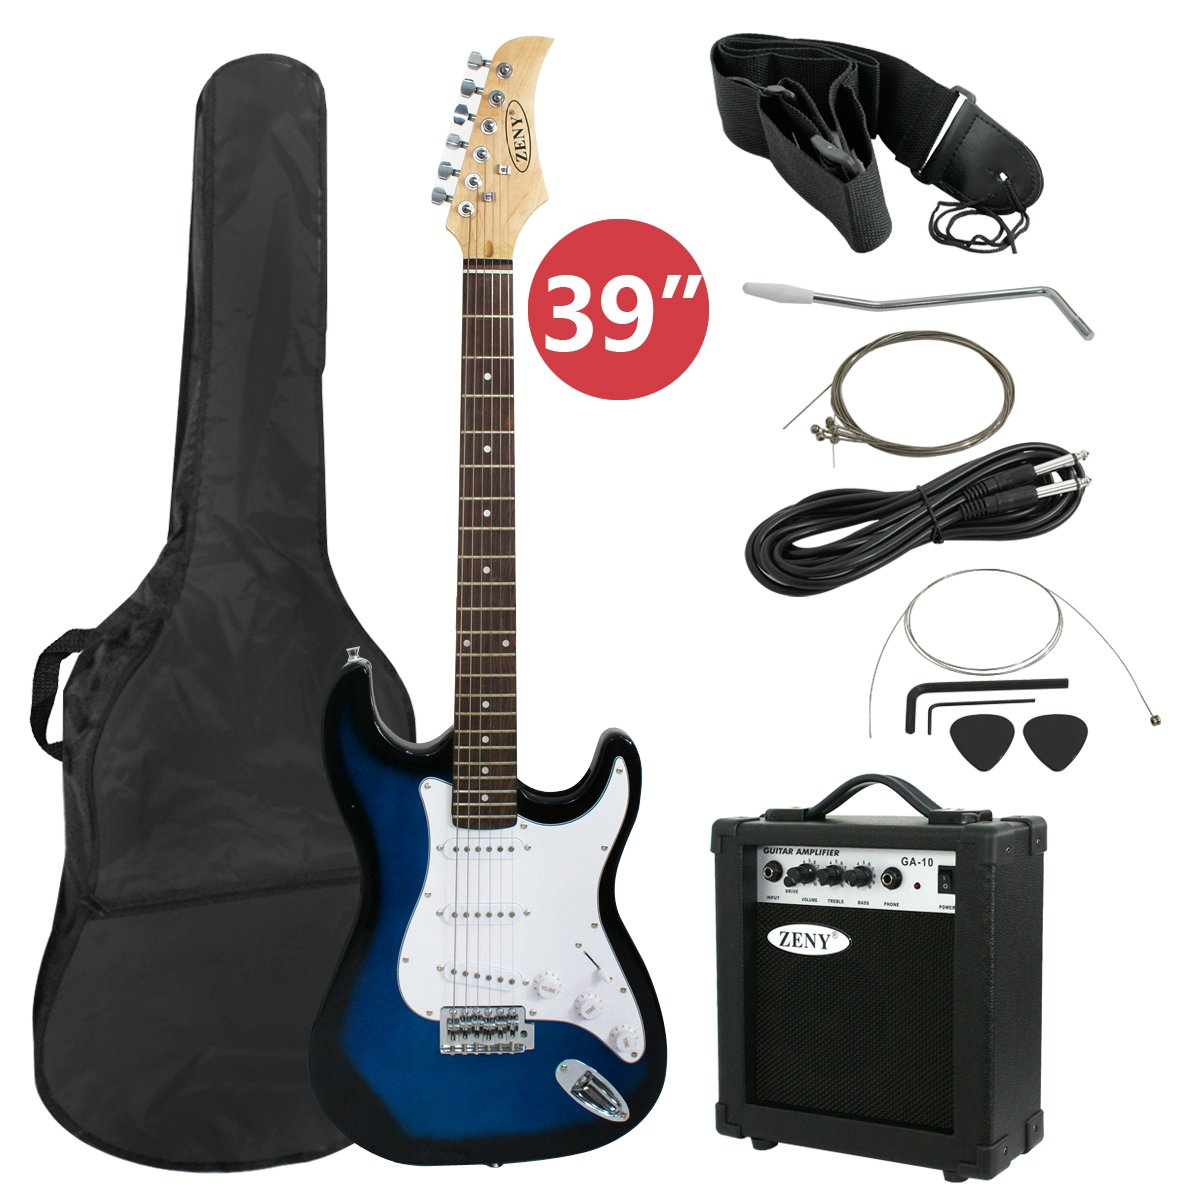 ZENY 39'' Full Size Electric Guitar with Amp, Case and Accessories Pack Beginner Starter Package, Blue Ideal Christmas Thanksgiving Holiday Gift